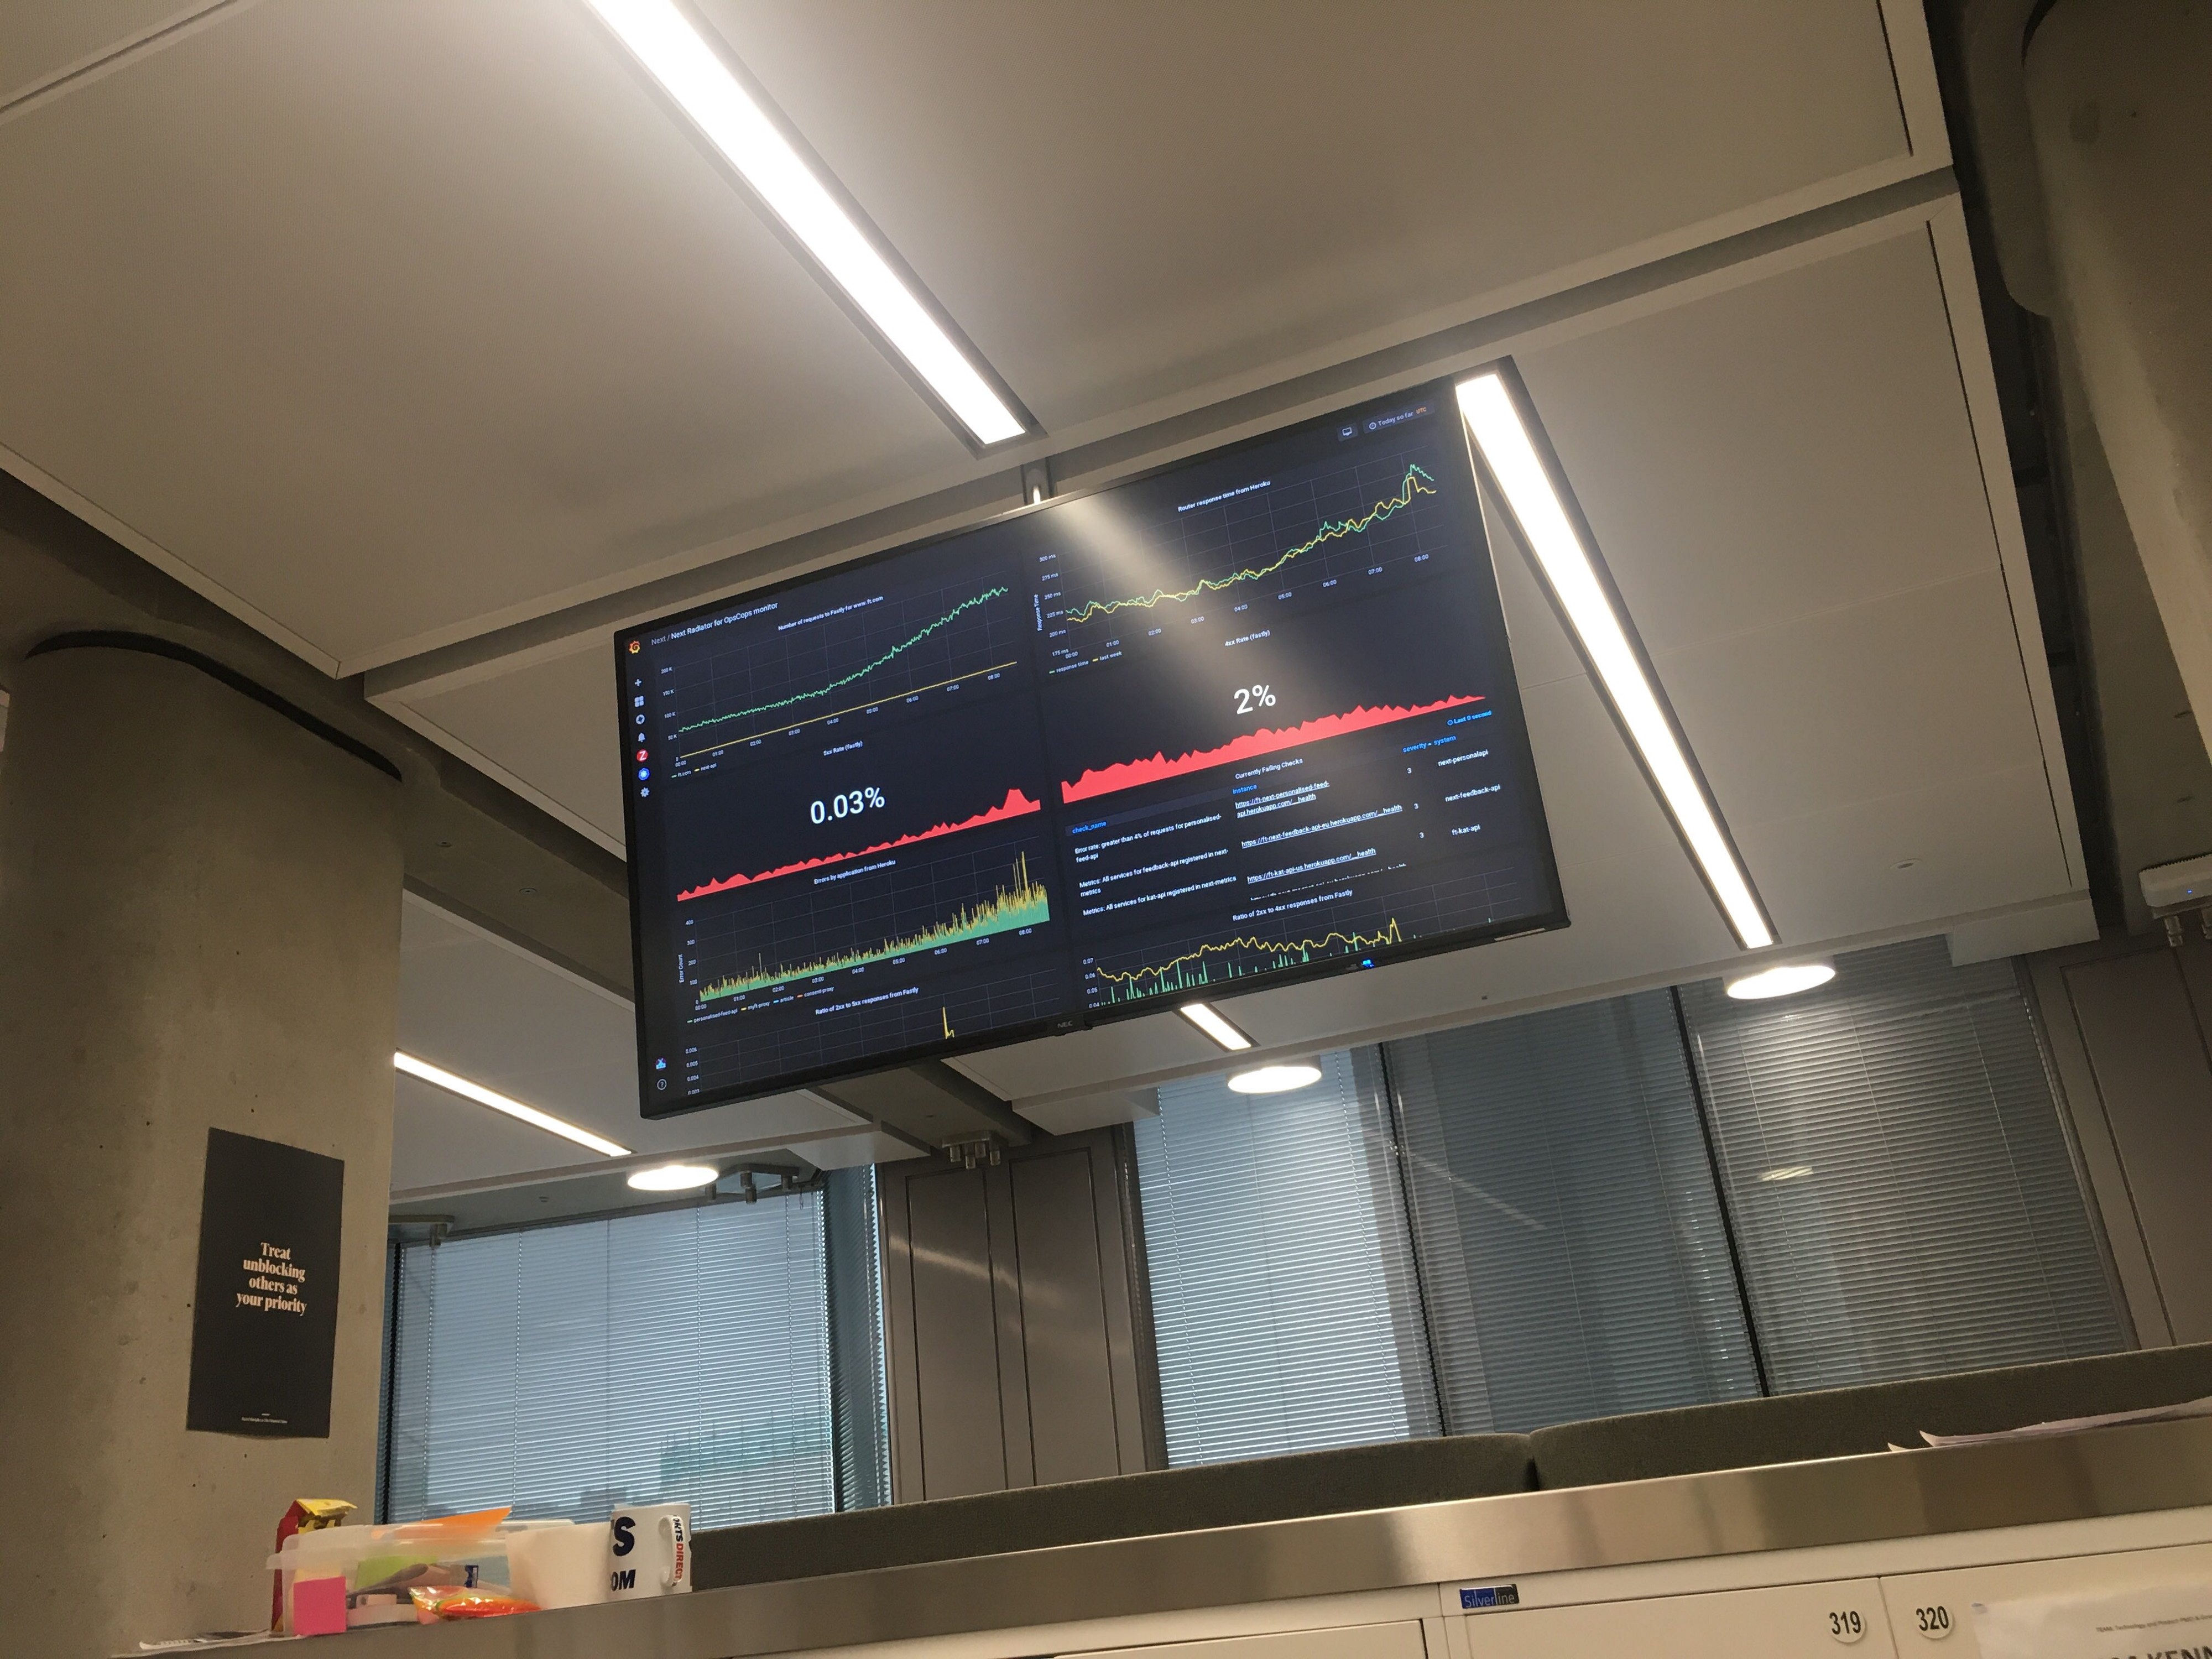 Image of a monitoring screen in FT's offices